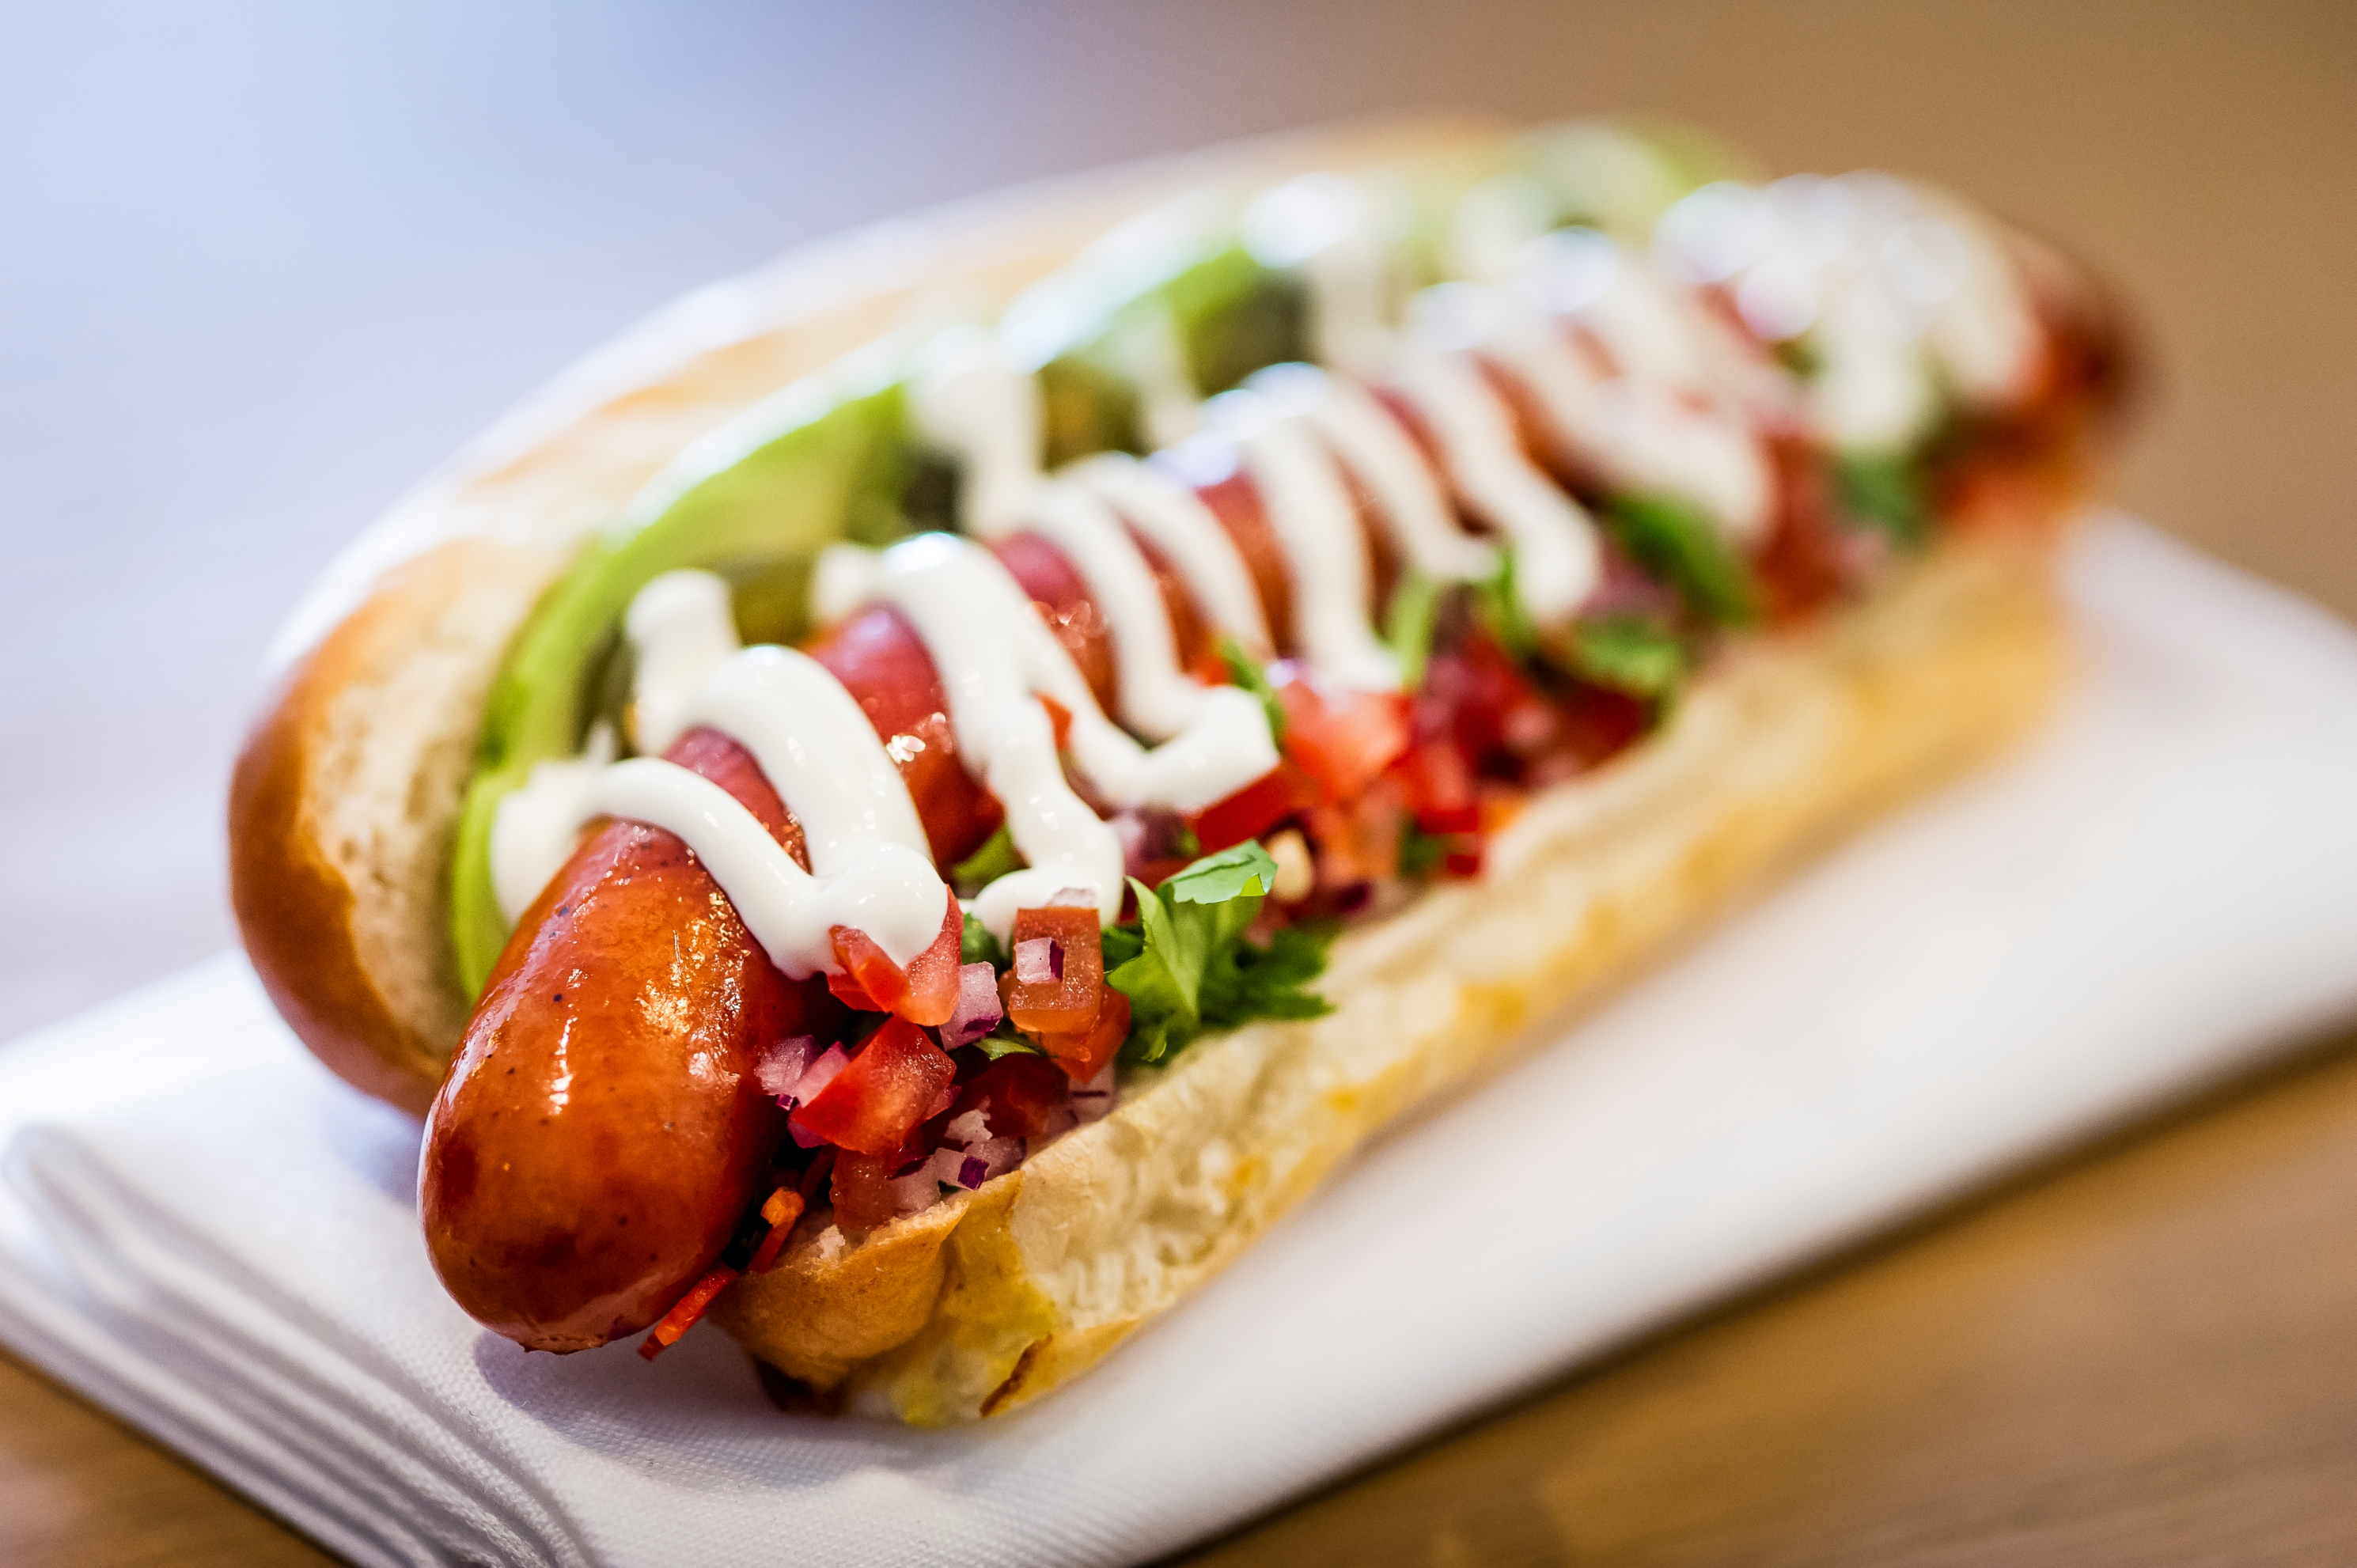 Hot Cuisine Hot Dog Full Hd Wallpaper And Background Image 2979x1982